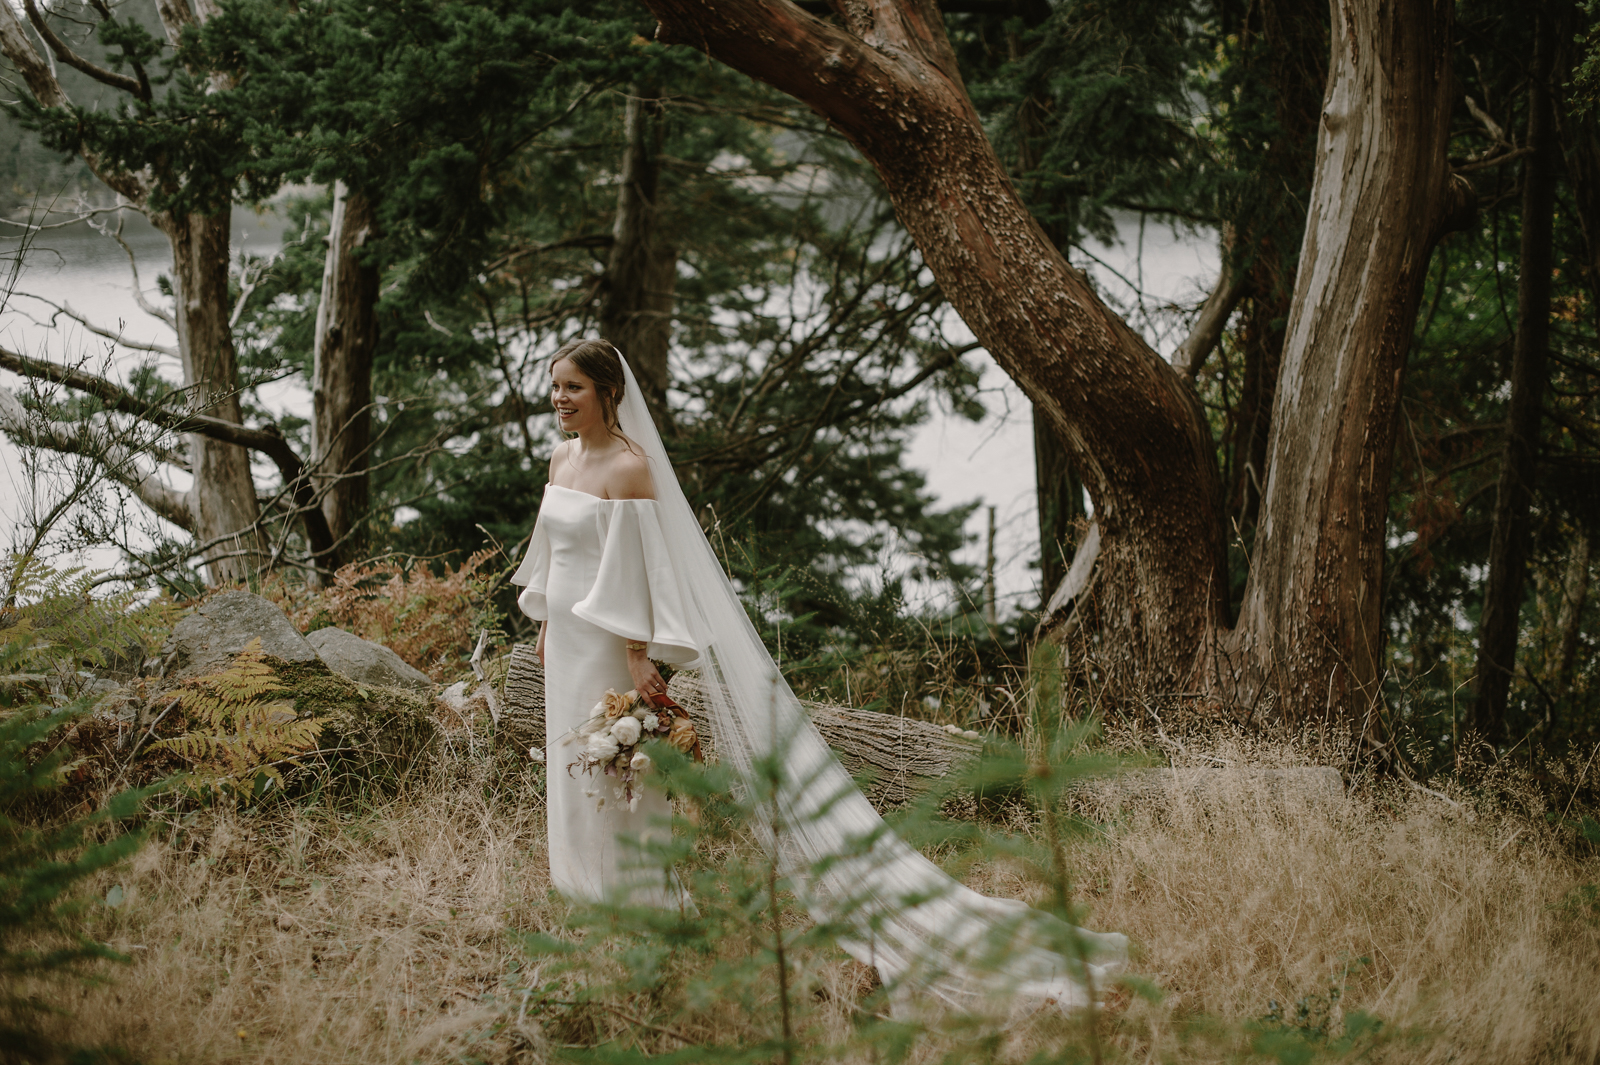 Kristen_Marie_Parker_Woodstock_Farm_Wedding024.JPG